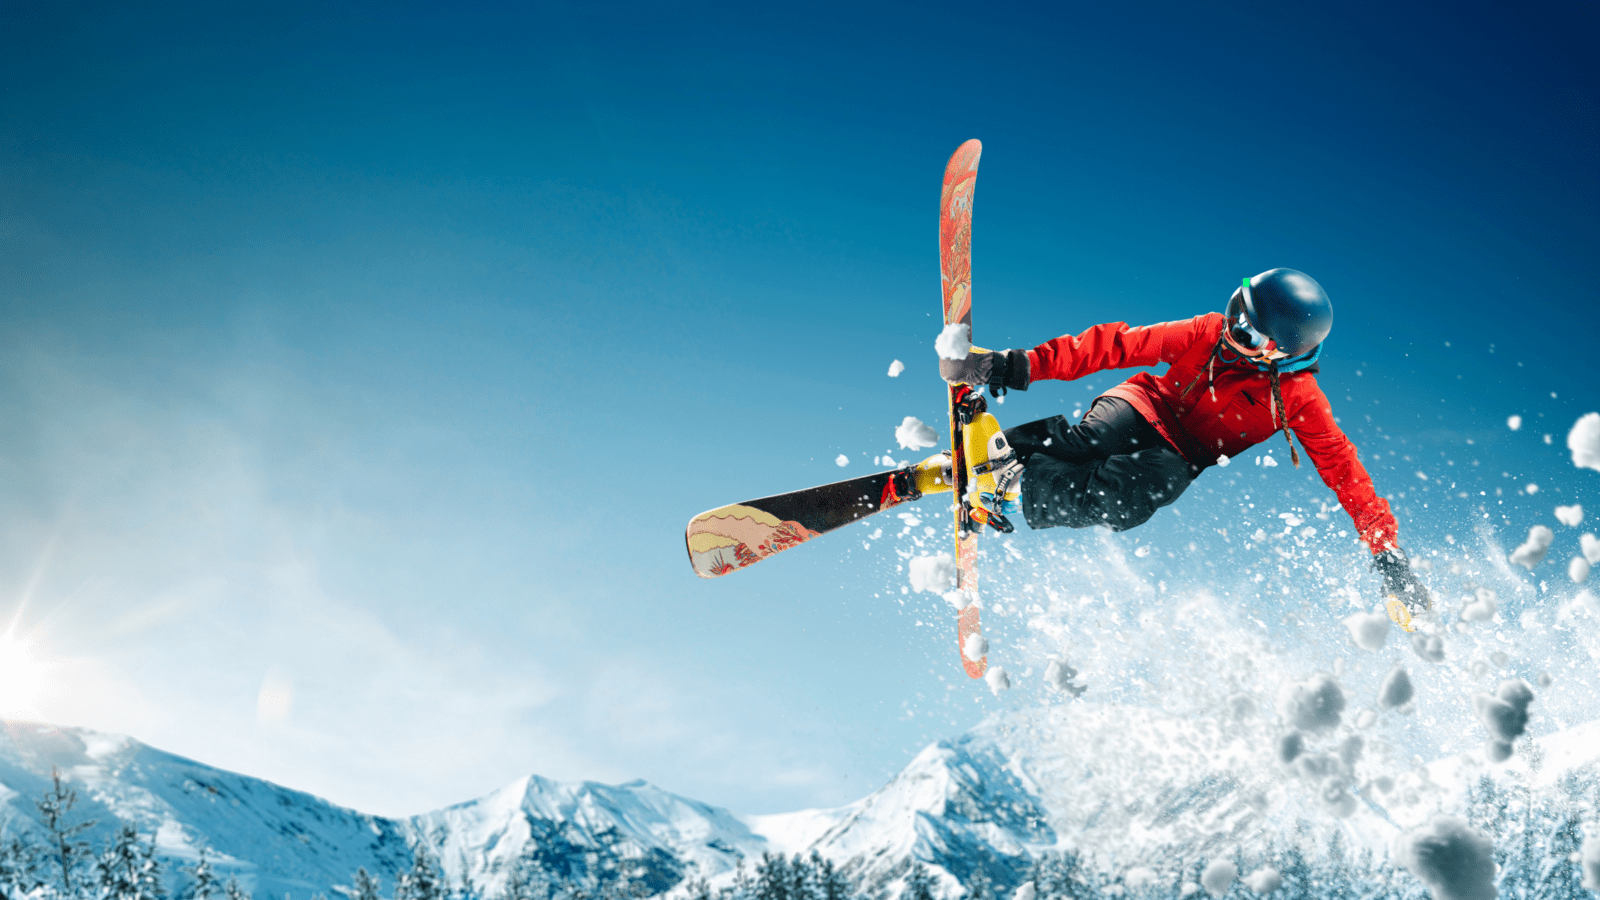 person skiing doing a trick off of a jump with mountains in the background